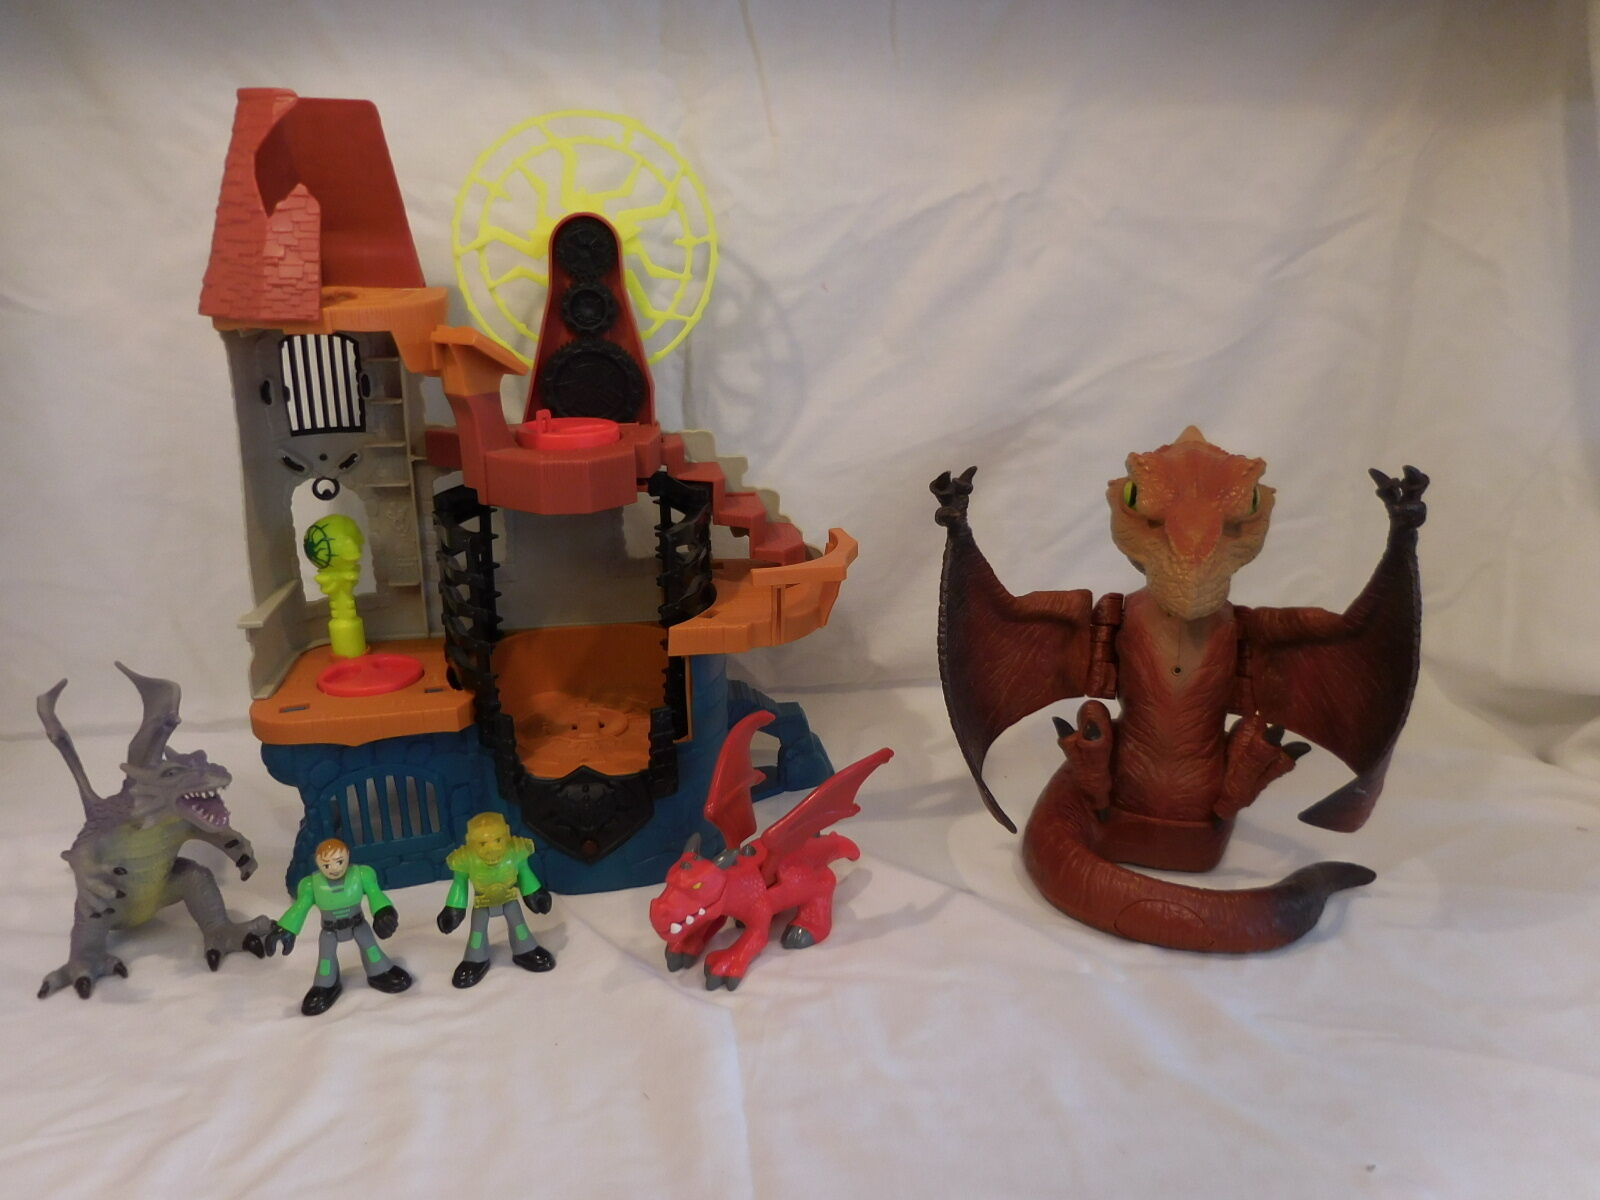 Imaginext Castle Wizard Tower Prehistoric Pets Pets Pets Pterodactyl Terrordacty Interacti e964ba